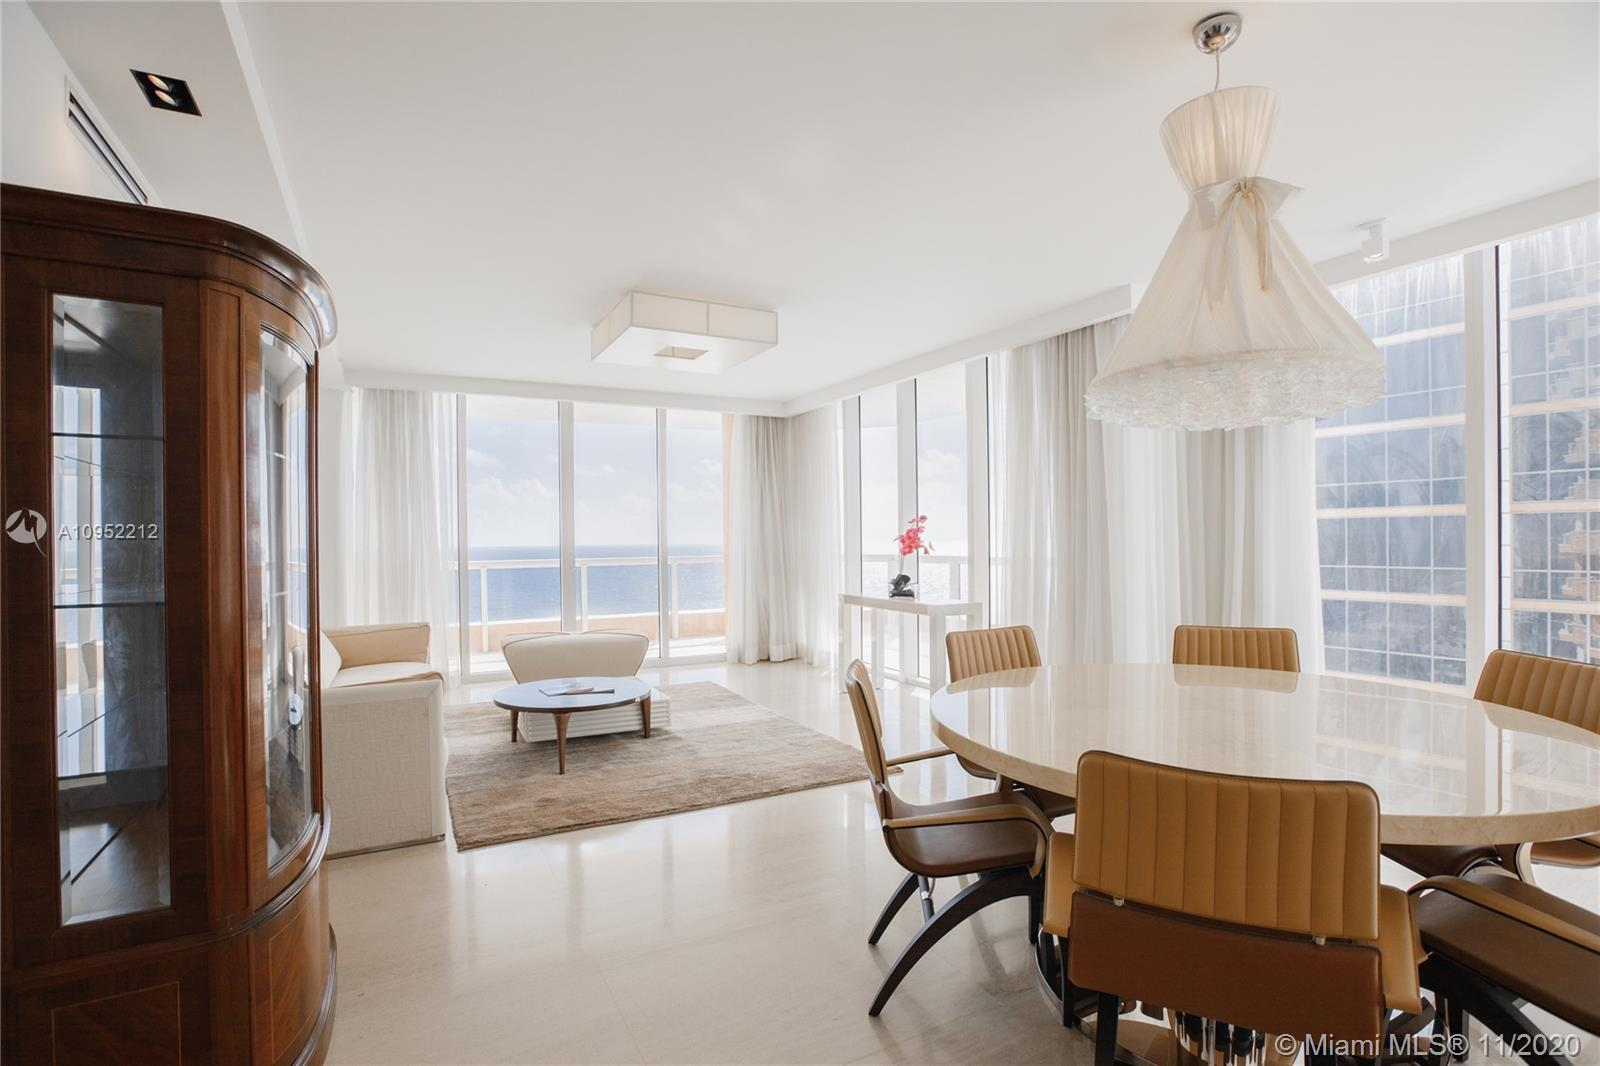 SPACIOUS 3/3.5 MOST DESIRBLE SOUTH EAST CORNER FLOW THRU UNIT (TWO LIVING AND FORMAL DINING ROOM SPA